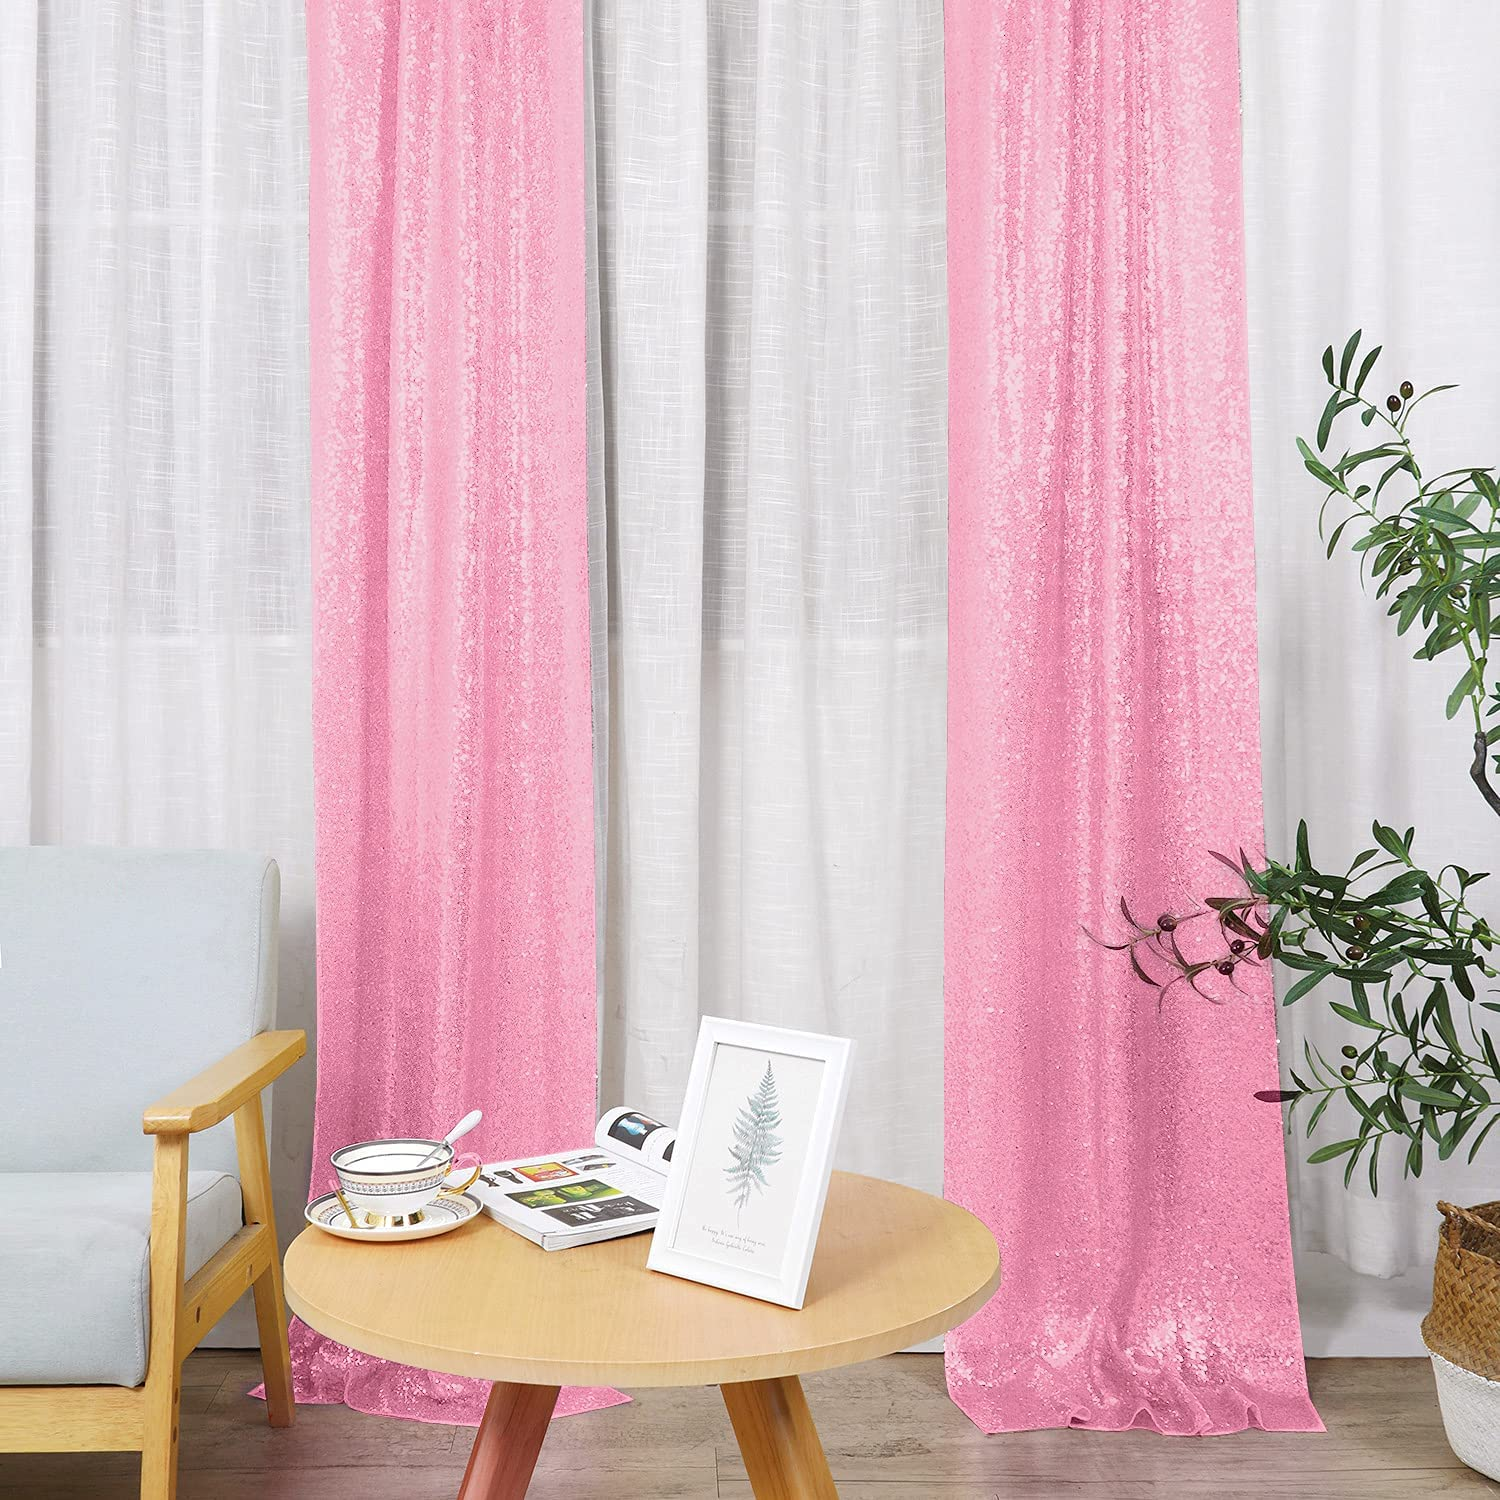 Hahuho Pink Super special price Animer and price revision Sequin Backdrop Curtain Glitter Backdr 2FTx8FT 4PCS